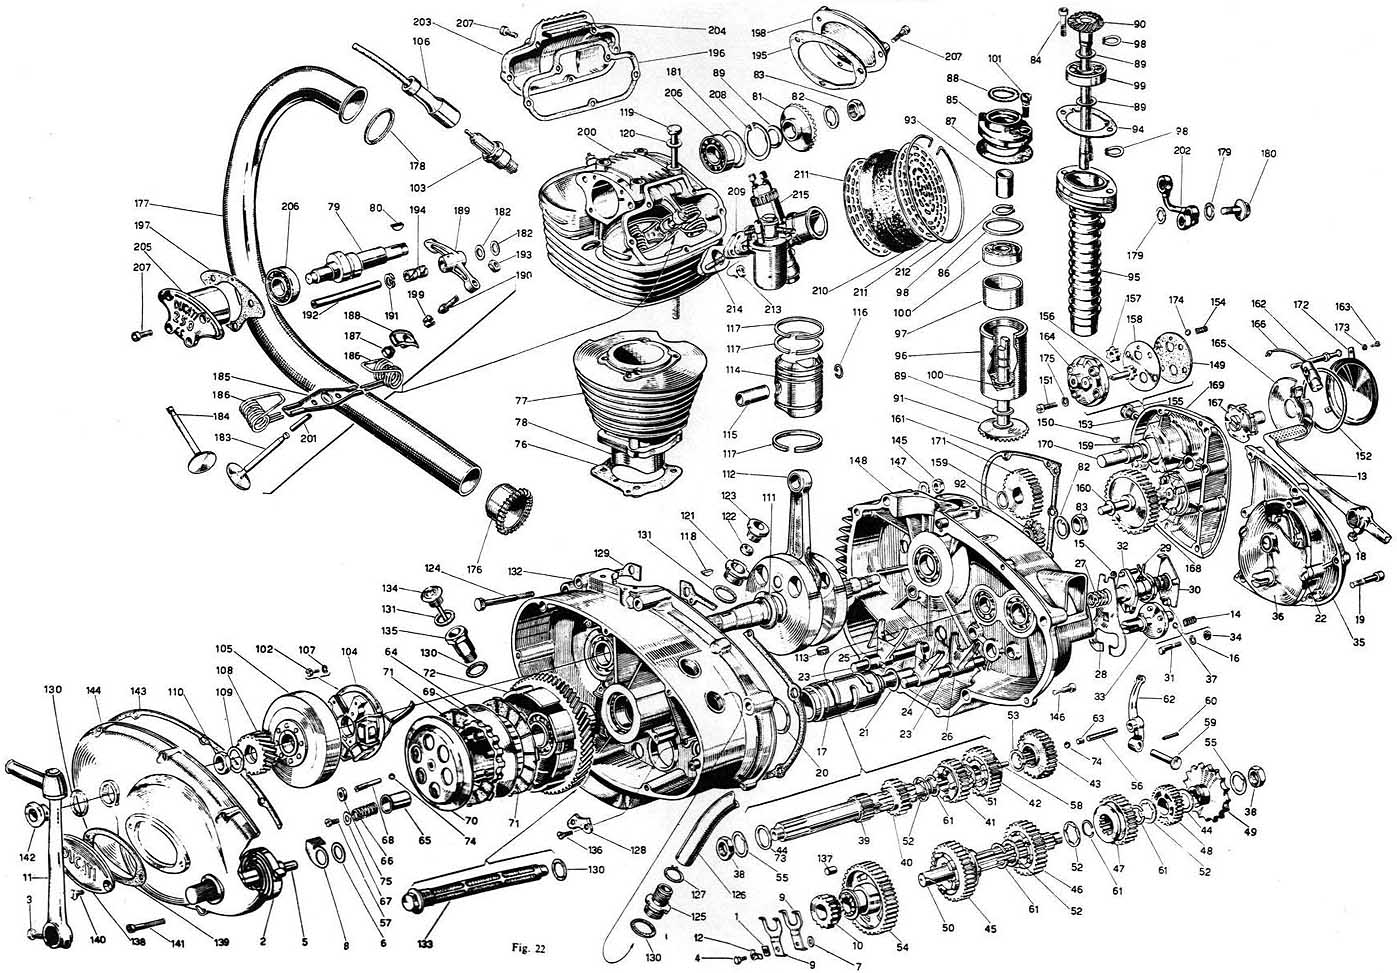 Schematics i further 65 Galaxie Wiring Diagram as well P 0900c1528007dbe6 together with Ducatimeccanica further 66 Mustang Clutch Diagram. on 1970 mustang wiring schematic